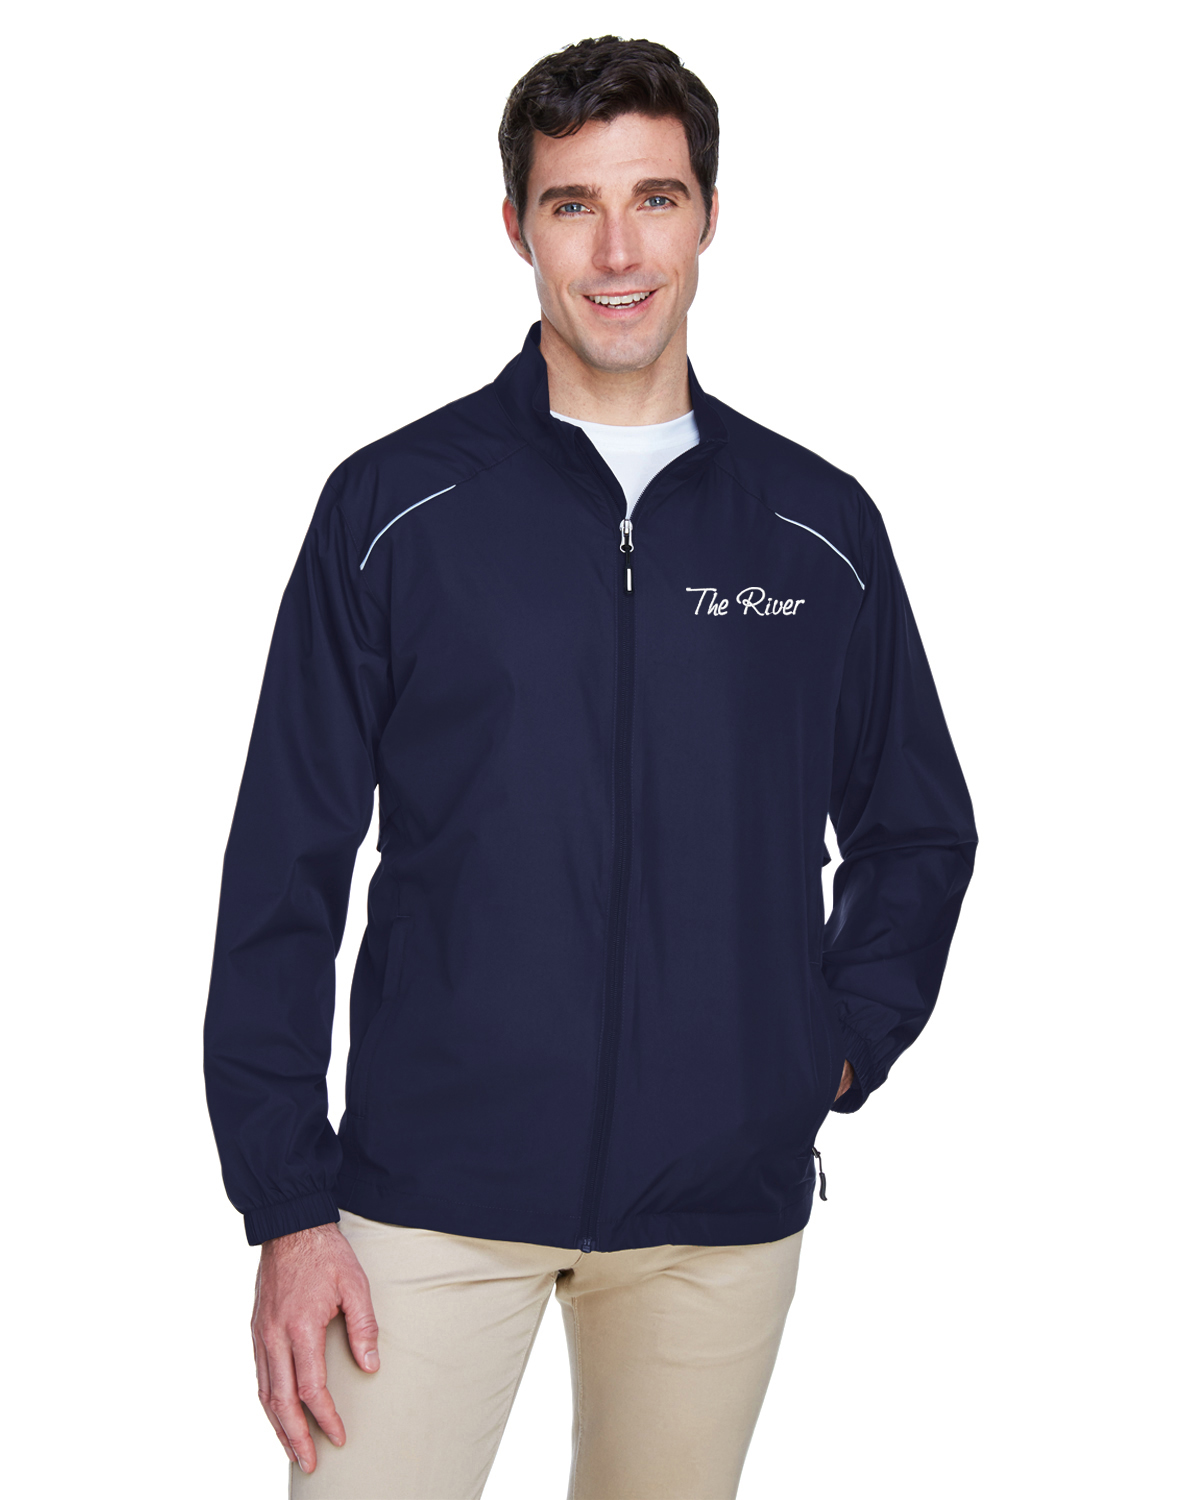 88183Prime Plus Core 365 Men's Motivate Unlined Lightweight Jacket Classic Navy